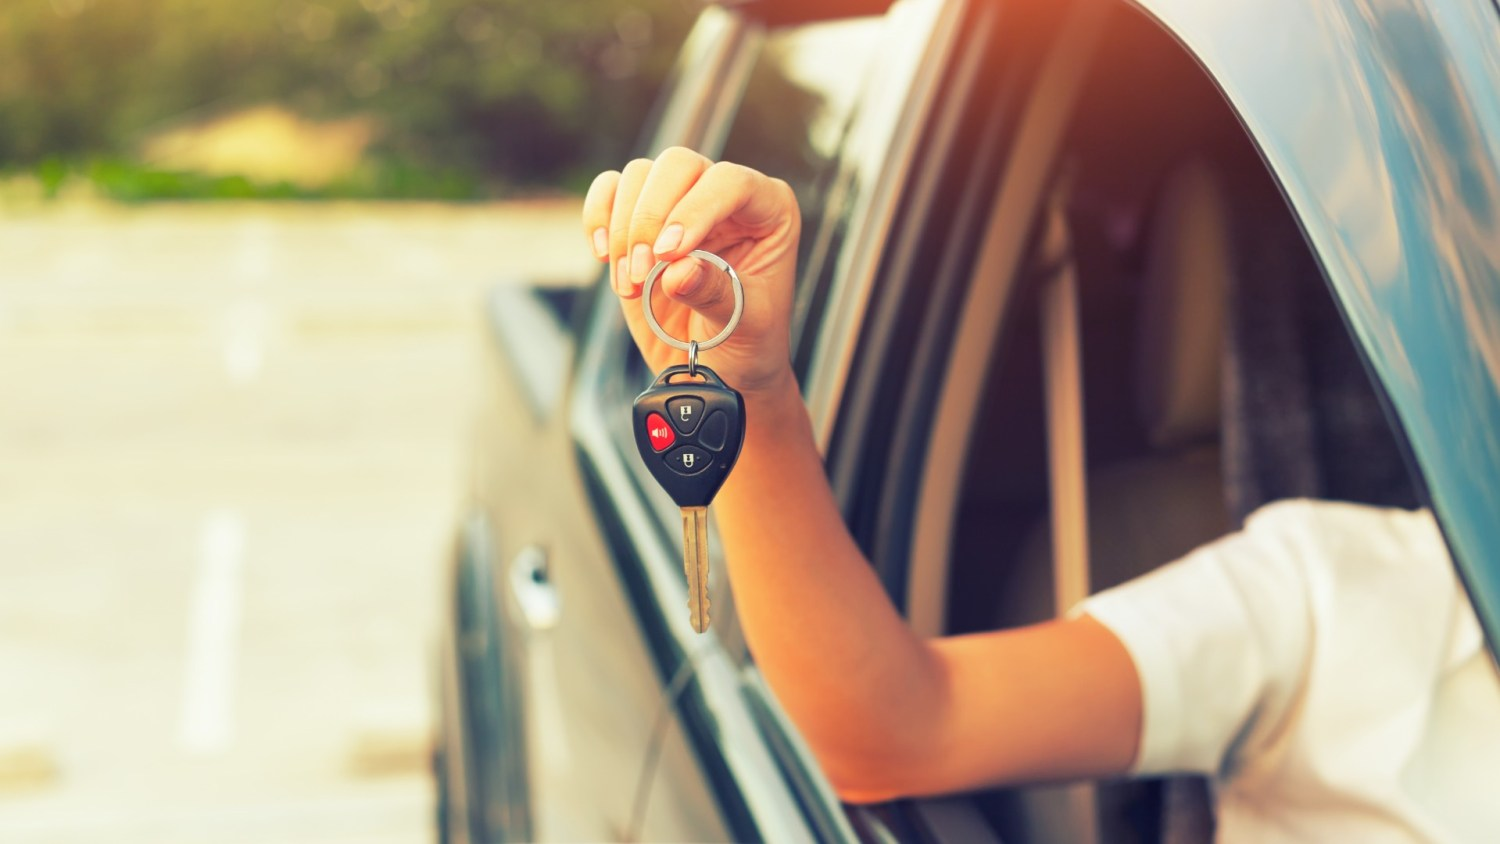 Millions buy their first cars without checking them over